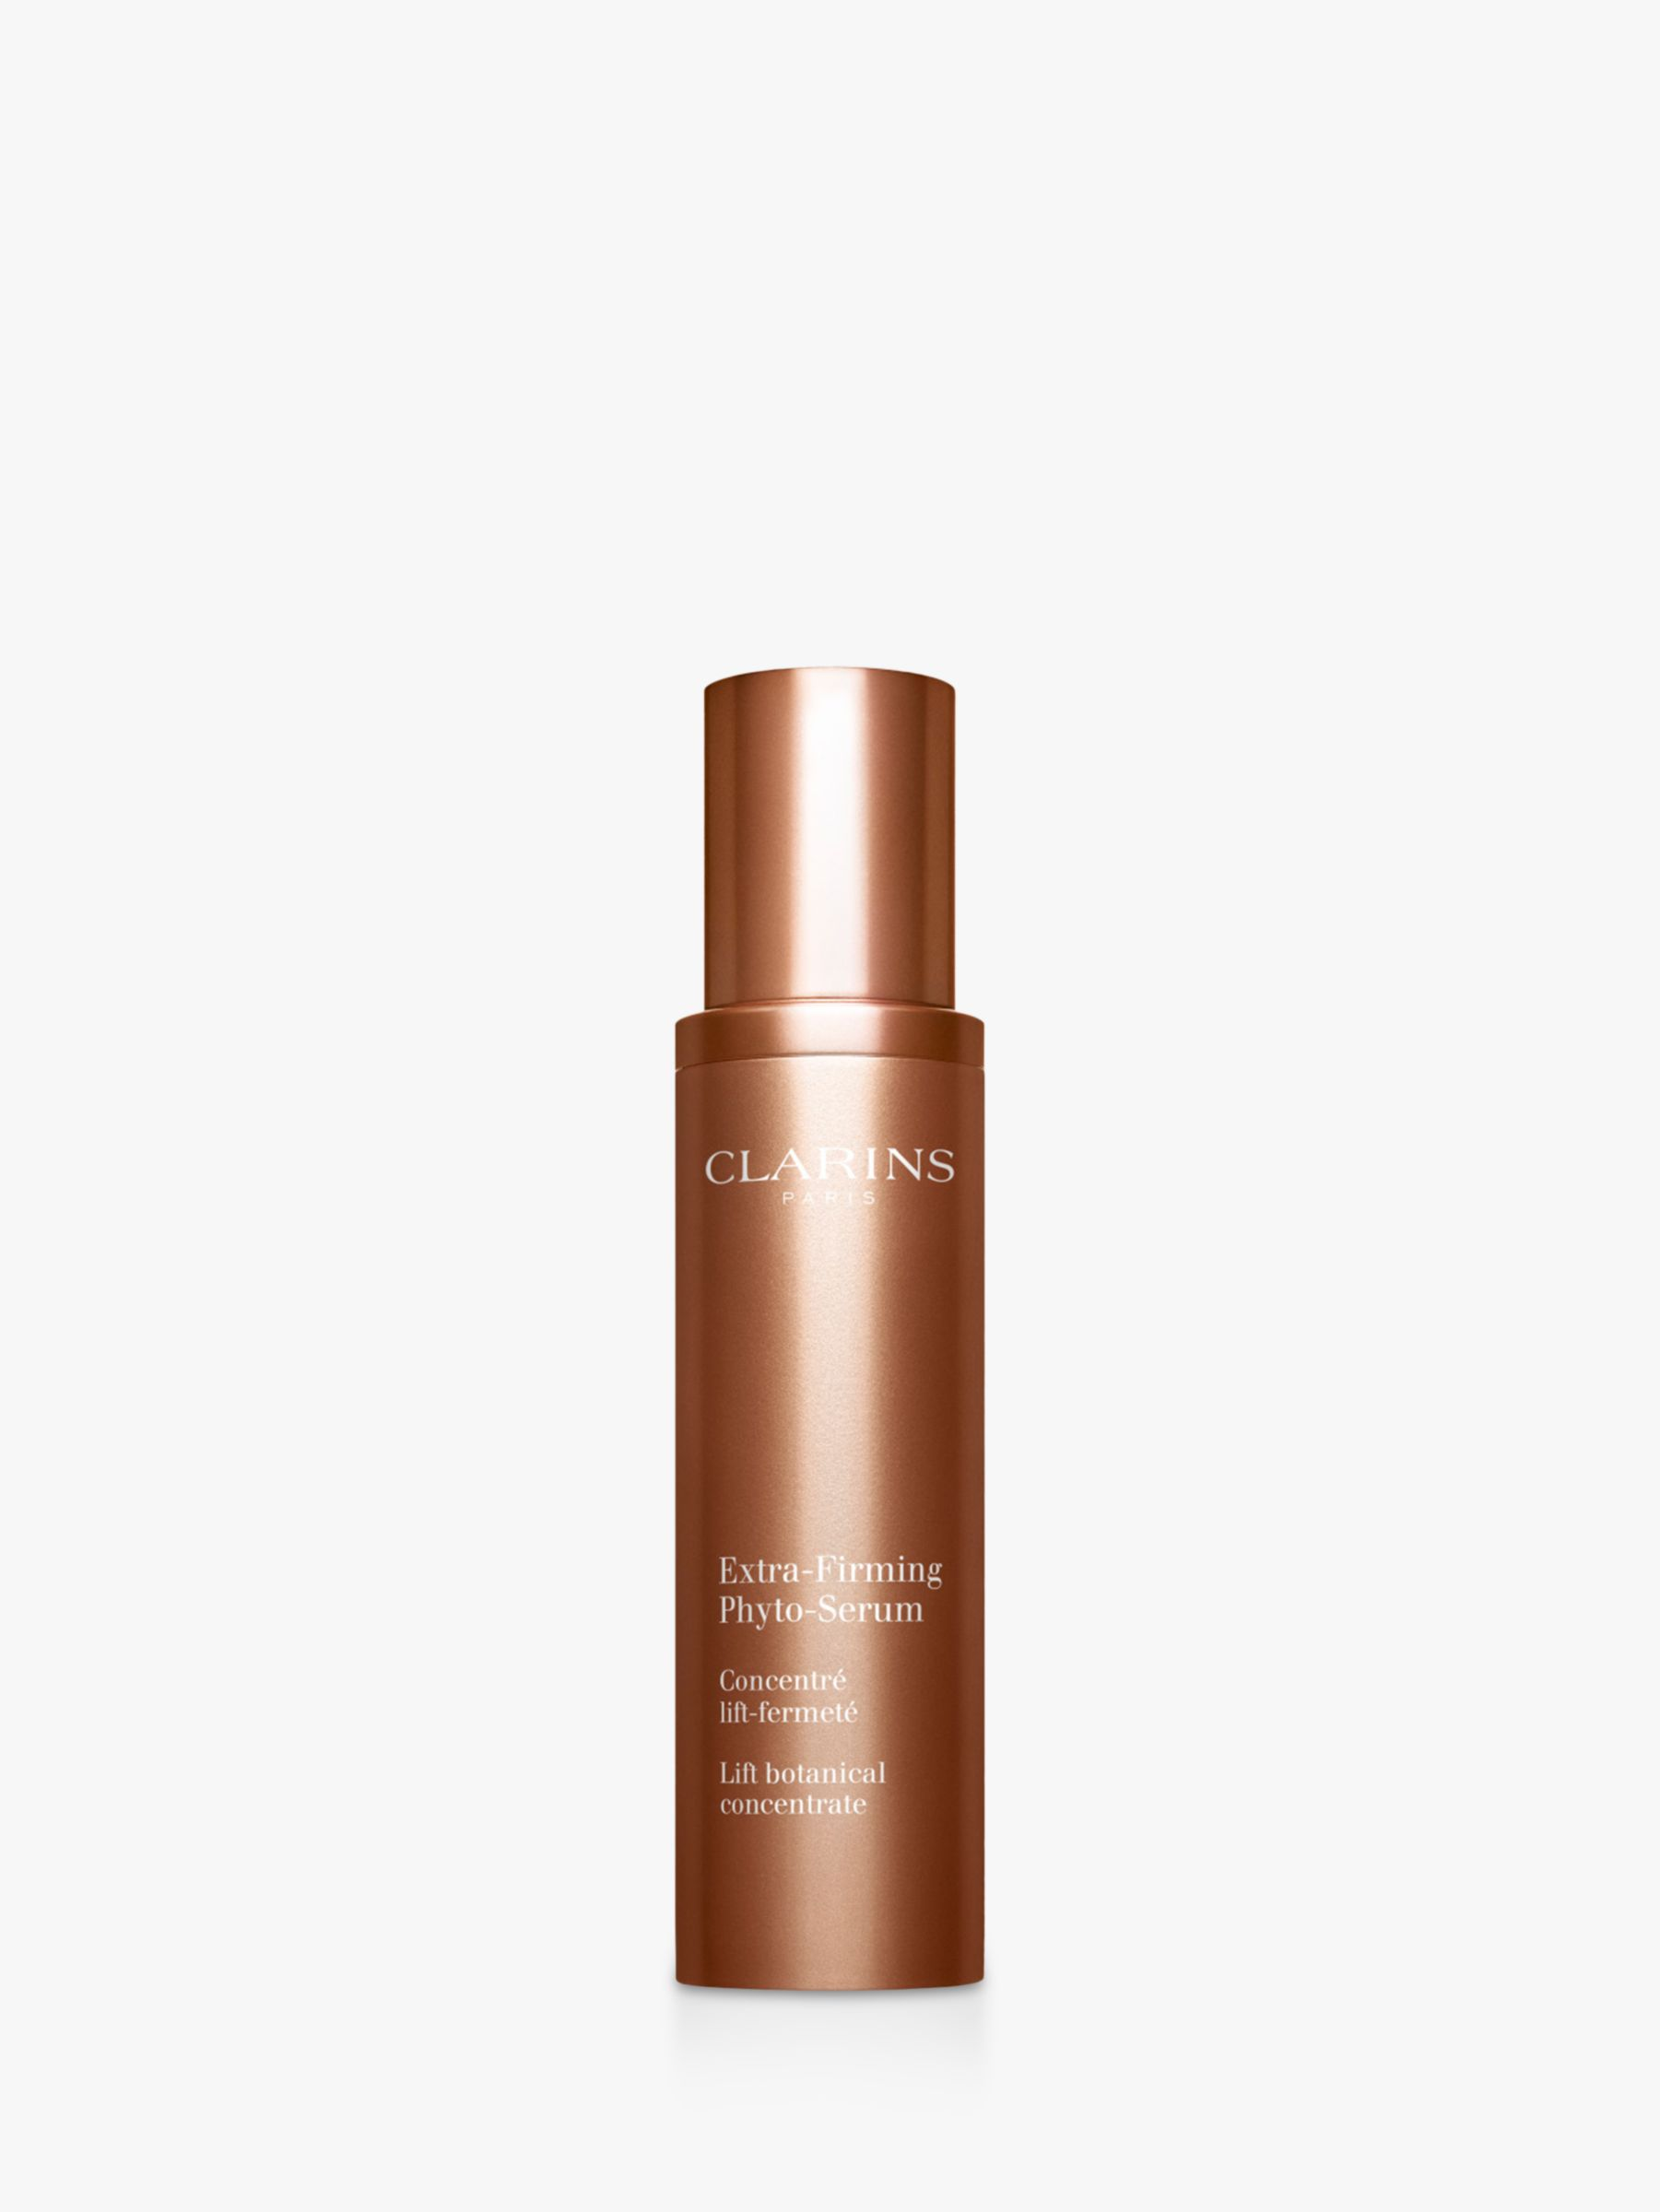 Clarins Clarins Extra-Firming Phyto-Serum, 50ml